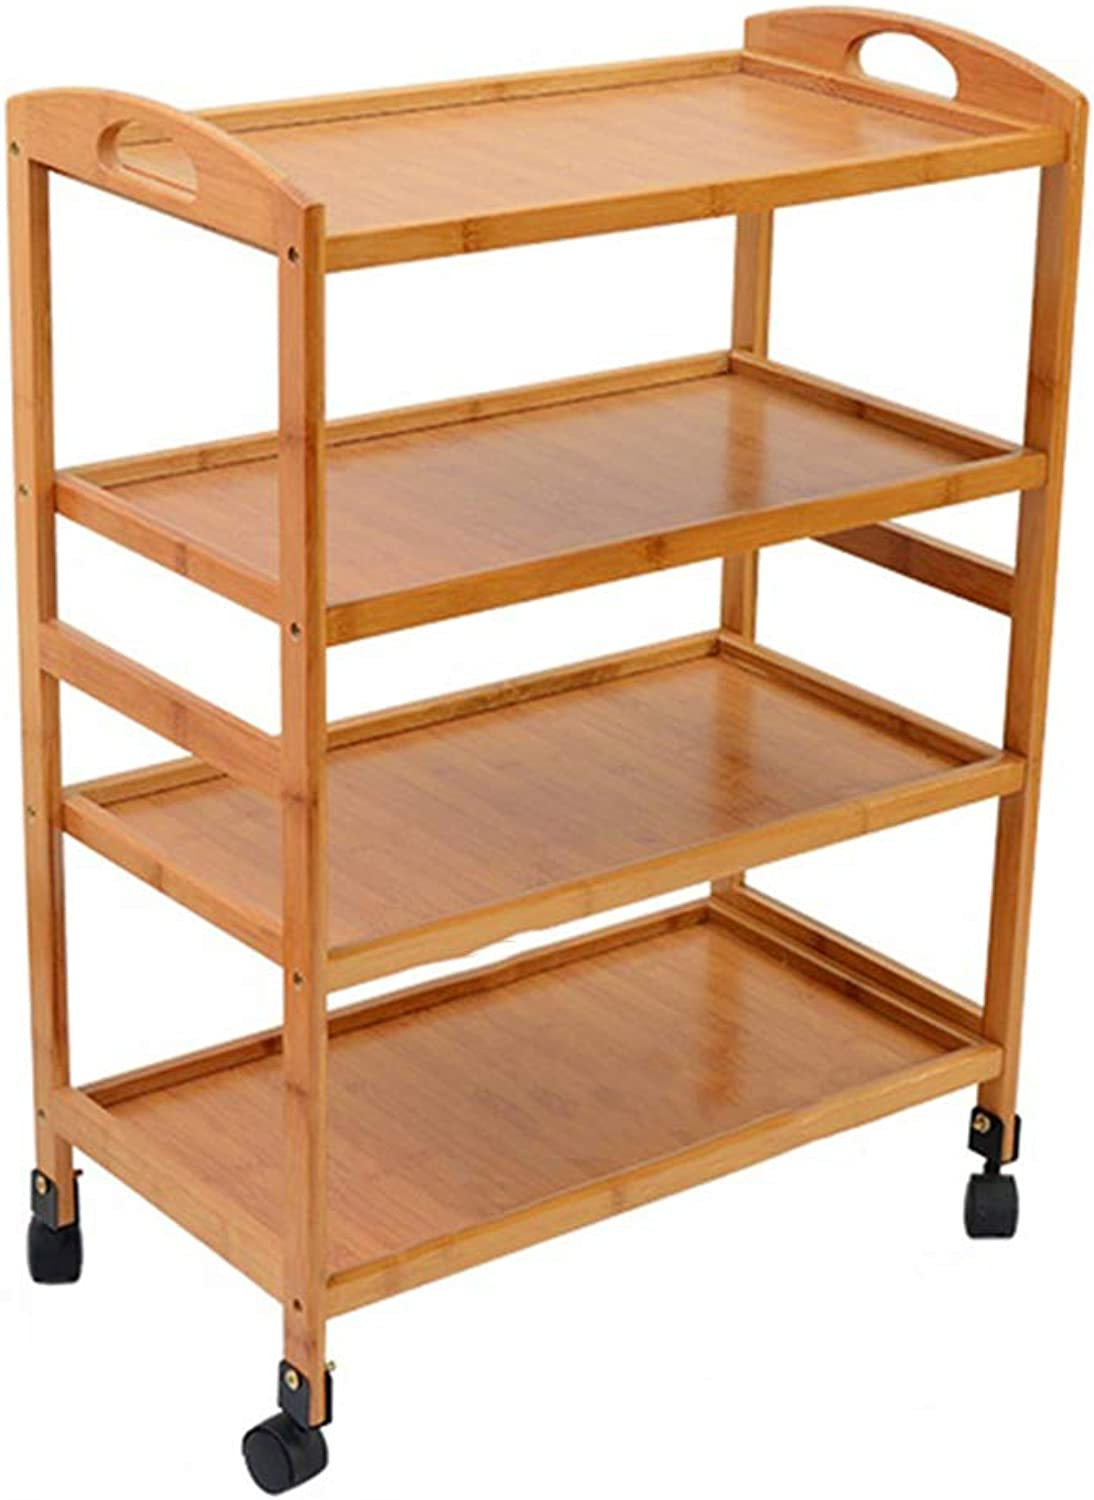 Serving Trolley Cart Restaurant Movable Kitchen Environmental Predection 4 Tier Bamboo Wood Universal Wheel, Carrying Capacity 60 Kg, 2 Sizes (color   Beige-B)